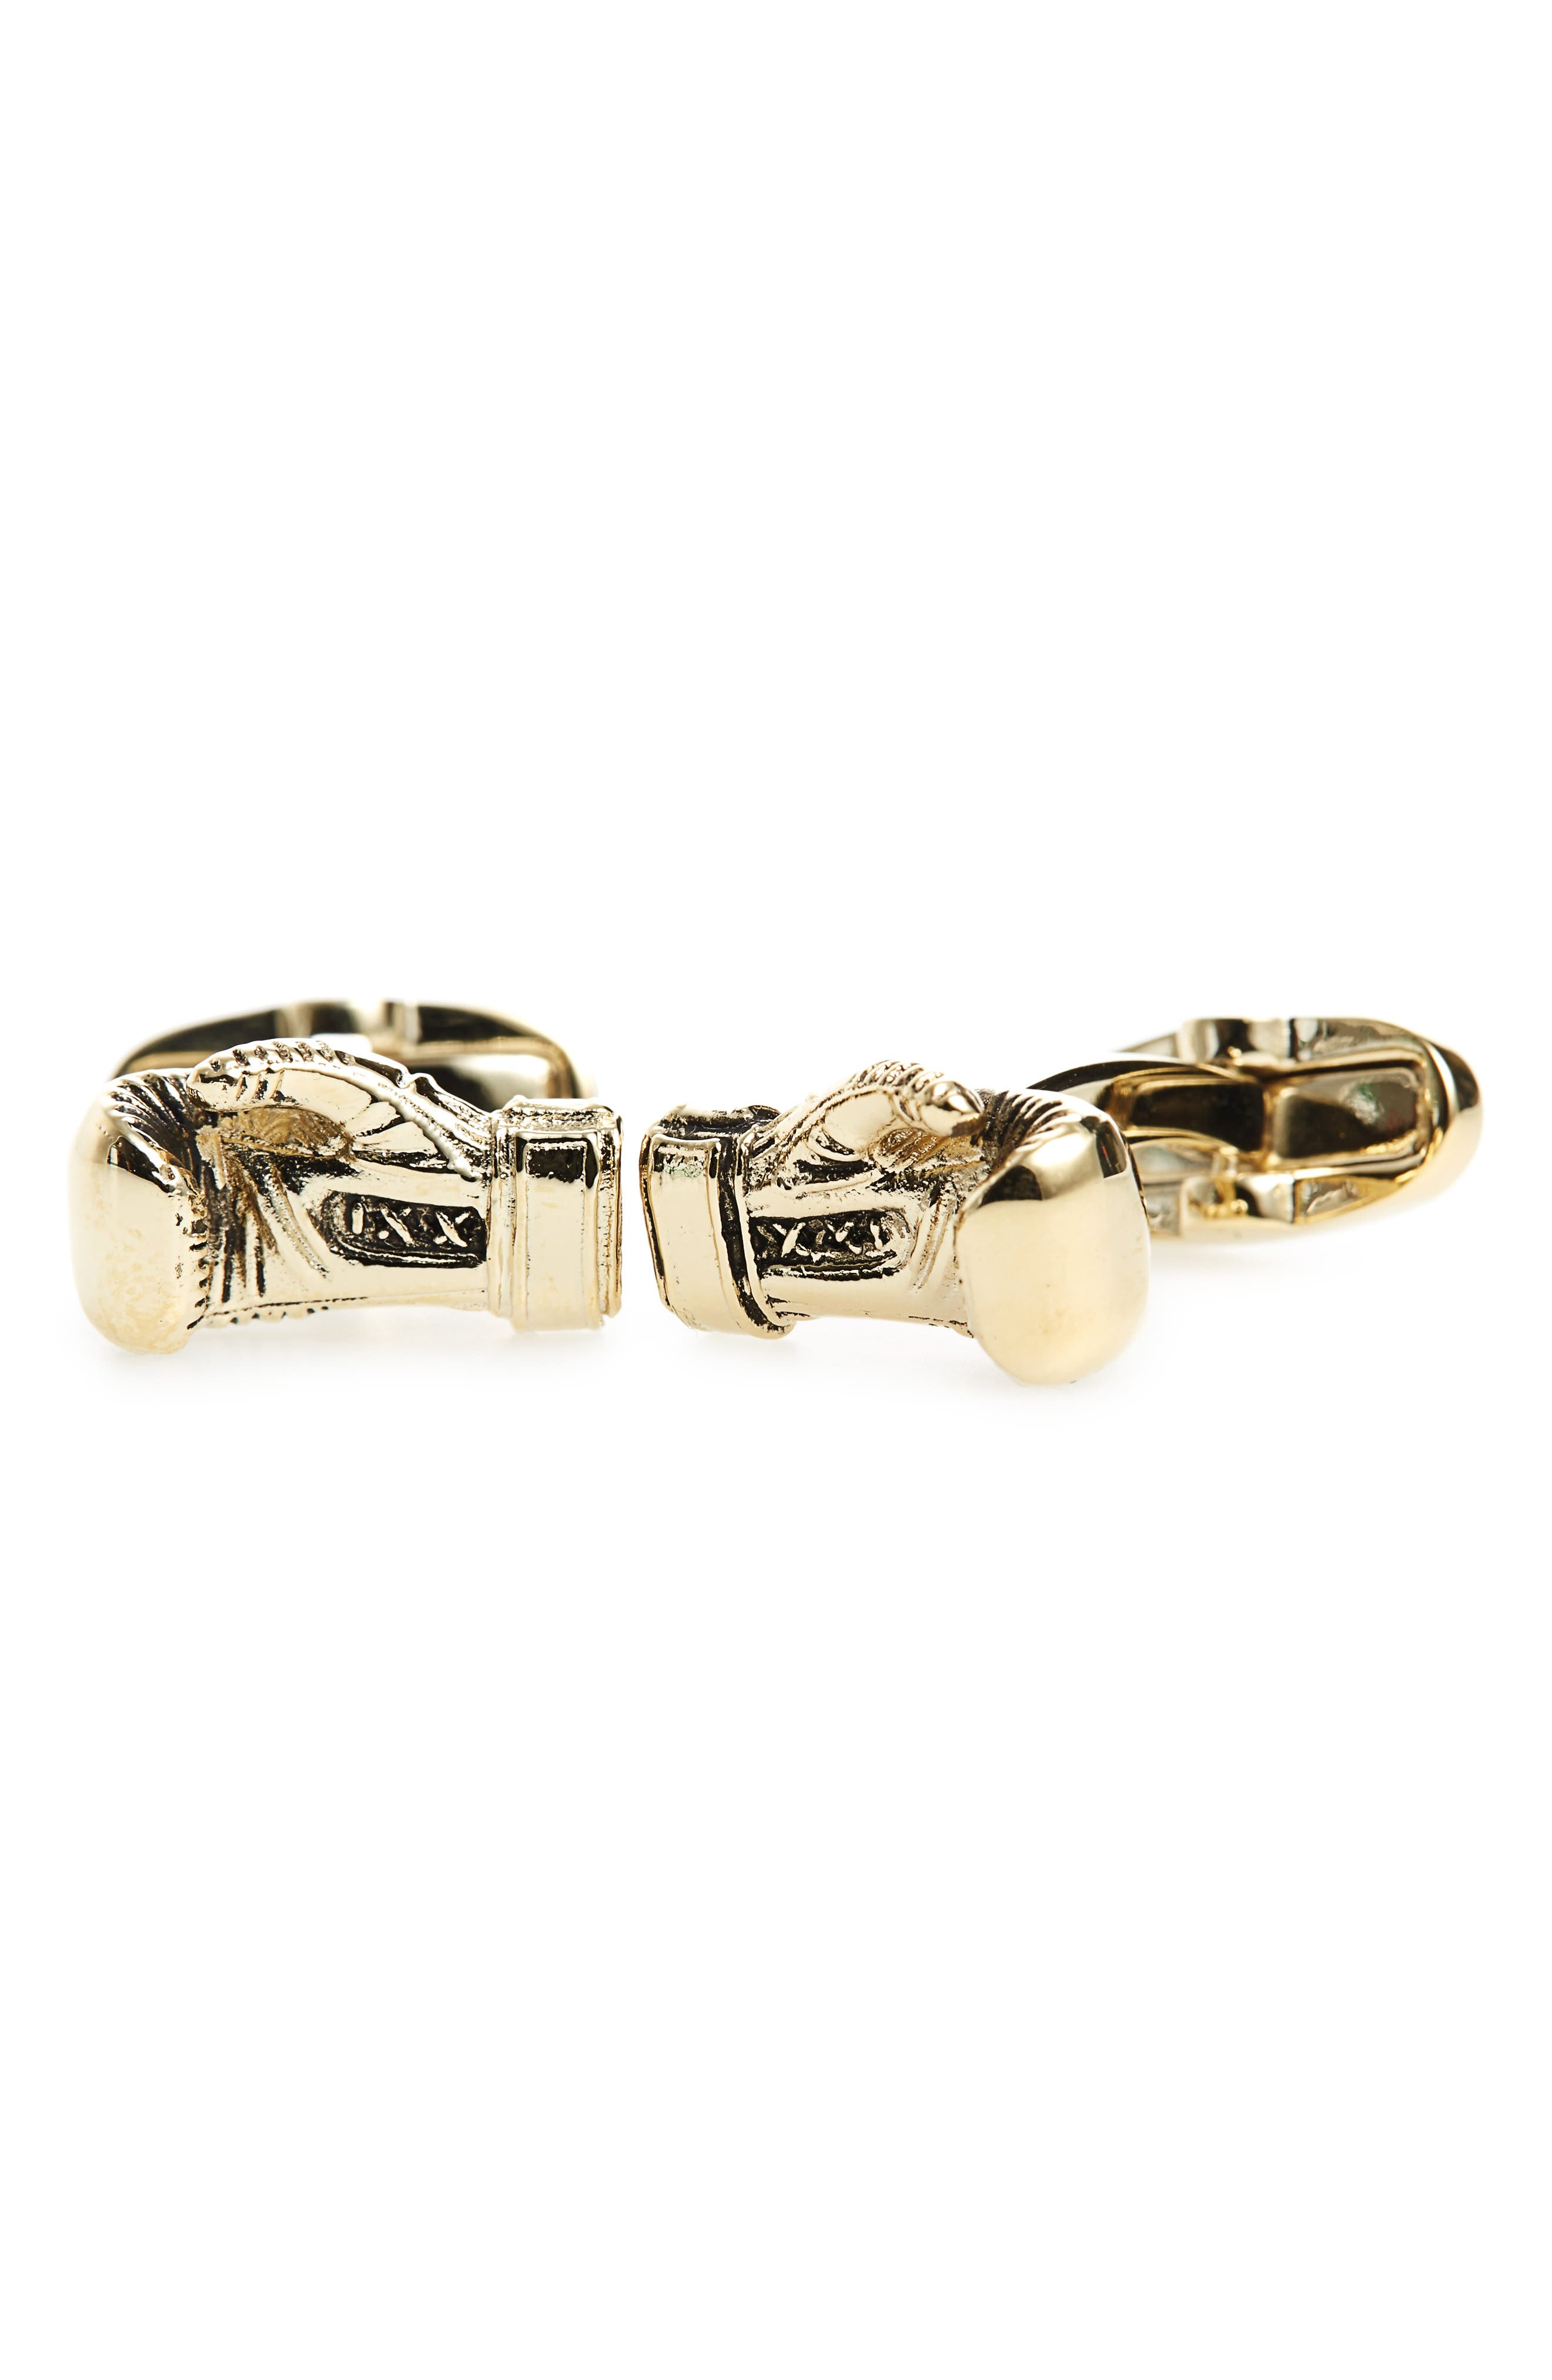 Paul Smith Boxing Glove Cuff Links